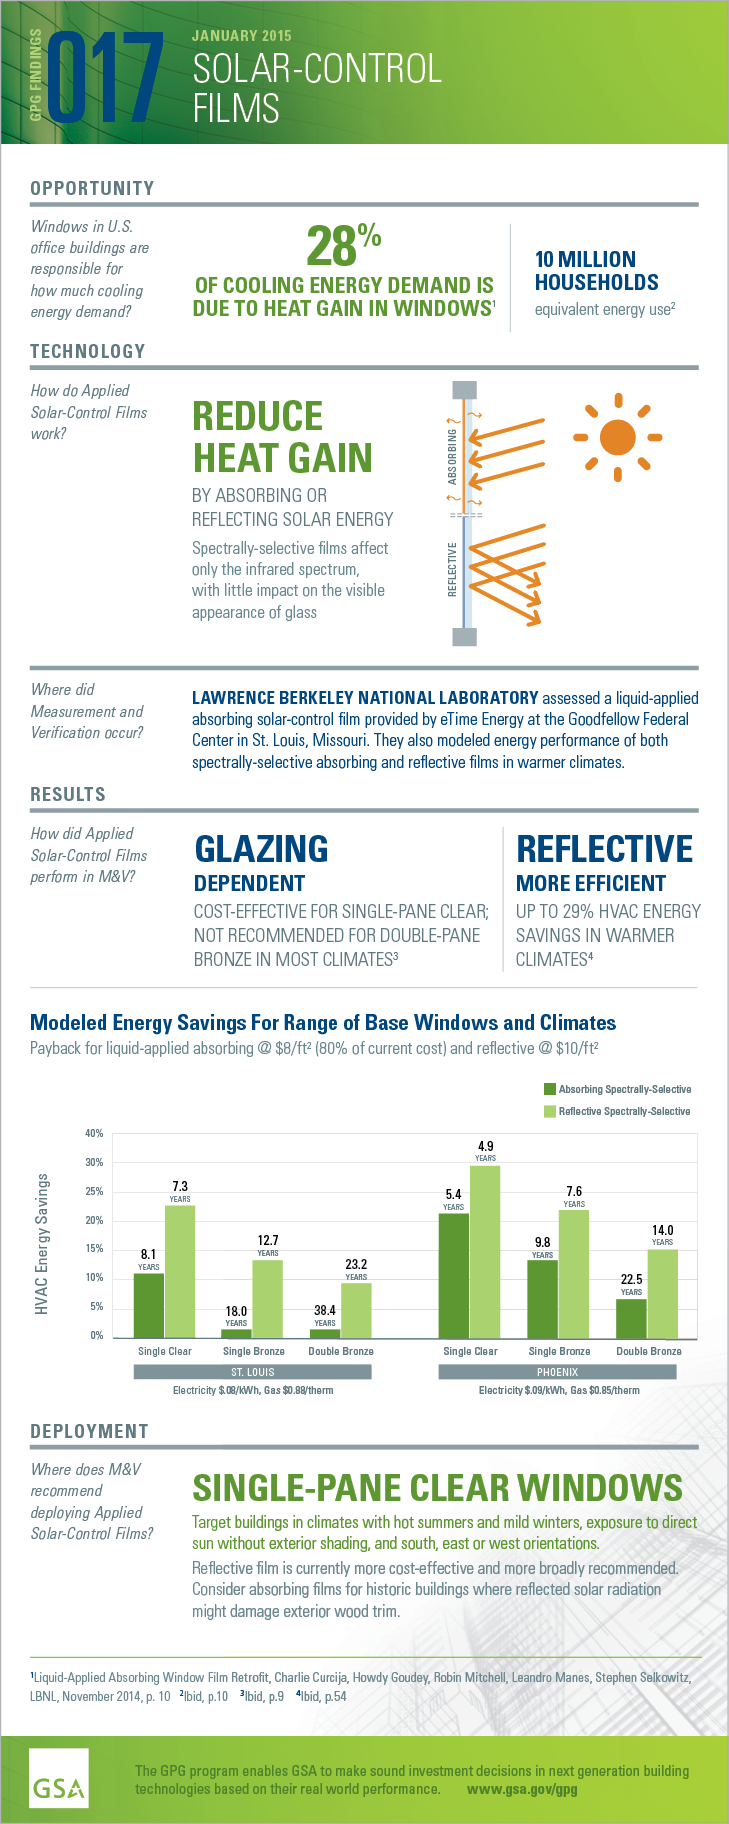 GPG Findings 017, January 2015, Applied Solar Control Retrofit Films. Opportunity:Windows in U.S. office buildings are responsible for how much cooling energy demand? 28% OF COOLING ENERGY DEMAND IS DUE TO HEAT GAIN IN WINDOWS. 10 MILLIONHOUSEHOLDS equivalent energy use.Technology: How do Applied Solar-Control Films work? REDUCE HEAT GAIN BY ABSORBING OR REFLECTING SOLAR ENERGY. Spectrally-selective films affect only the infrared spectrum, with little impact on the visibleappearance of glass. Measurement and Verification. Where did M and V occur? LAWRENCE BERKELEY NATIONAL LABORATORY assessed a liquid-applied absorbing solar-control film at the Goodfellow Federal Center in St. Louis, Missouri. They also modeled energy performance of both spectrally-selective absorbing and reflective films in warmer climates. Results:How did AppliedSolar-Control Films perform in M&V? GLAZING DEPENDENT. COST-EFFECTIVE FOR SINGLE-PANE CLEAR; NOT RECOMMENDED FOR DOUBLE-PANEBRONZE IN MOST CLIMATES.REFLECTIVE MORE EFFICIENT UP TO 29% HVAC ENERGY SAVINGS IN WARMER CLIMATES. Payback for reflective film in Phoenix is 4.9 years. Deployment: Where does M&V recommend deploying Applied Solar-Control Films? SINGLE-PANE CLEAR WINDOWS. Target buildings in climates with hot summers and mild winters, exposure to direct sun without exterior shading, and south, east or west orientations. Reflective film is currently more cost-effective and more broadly recommended.Consider absorbing films for historic buildings where reflected solar radiation might damage exterior wood trim.